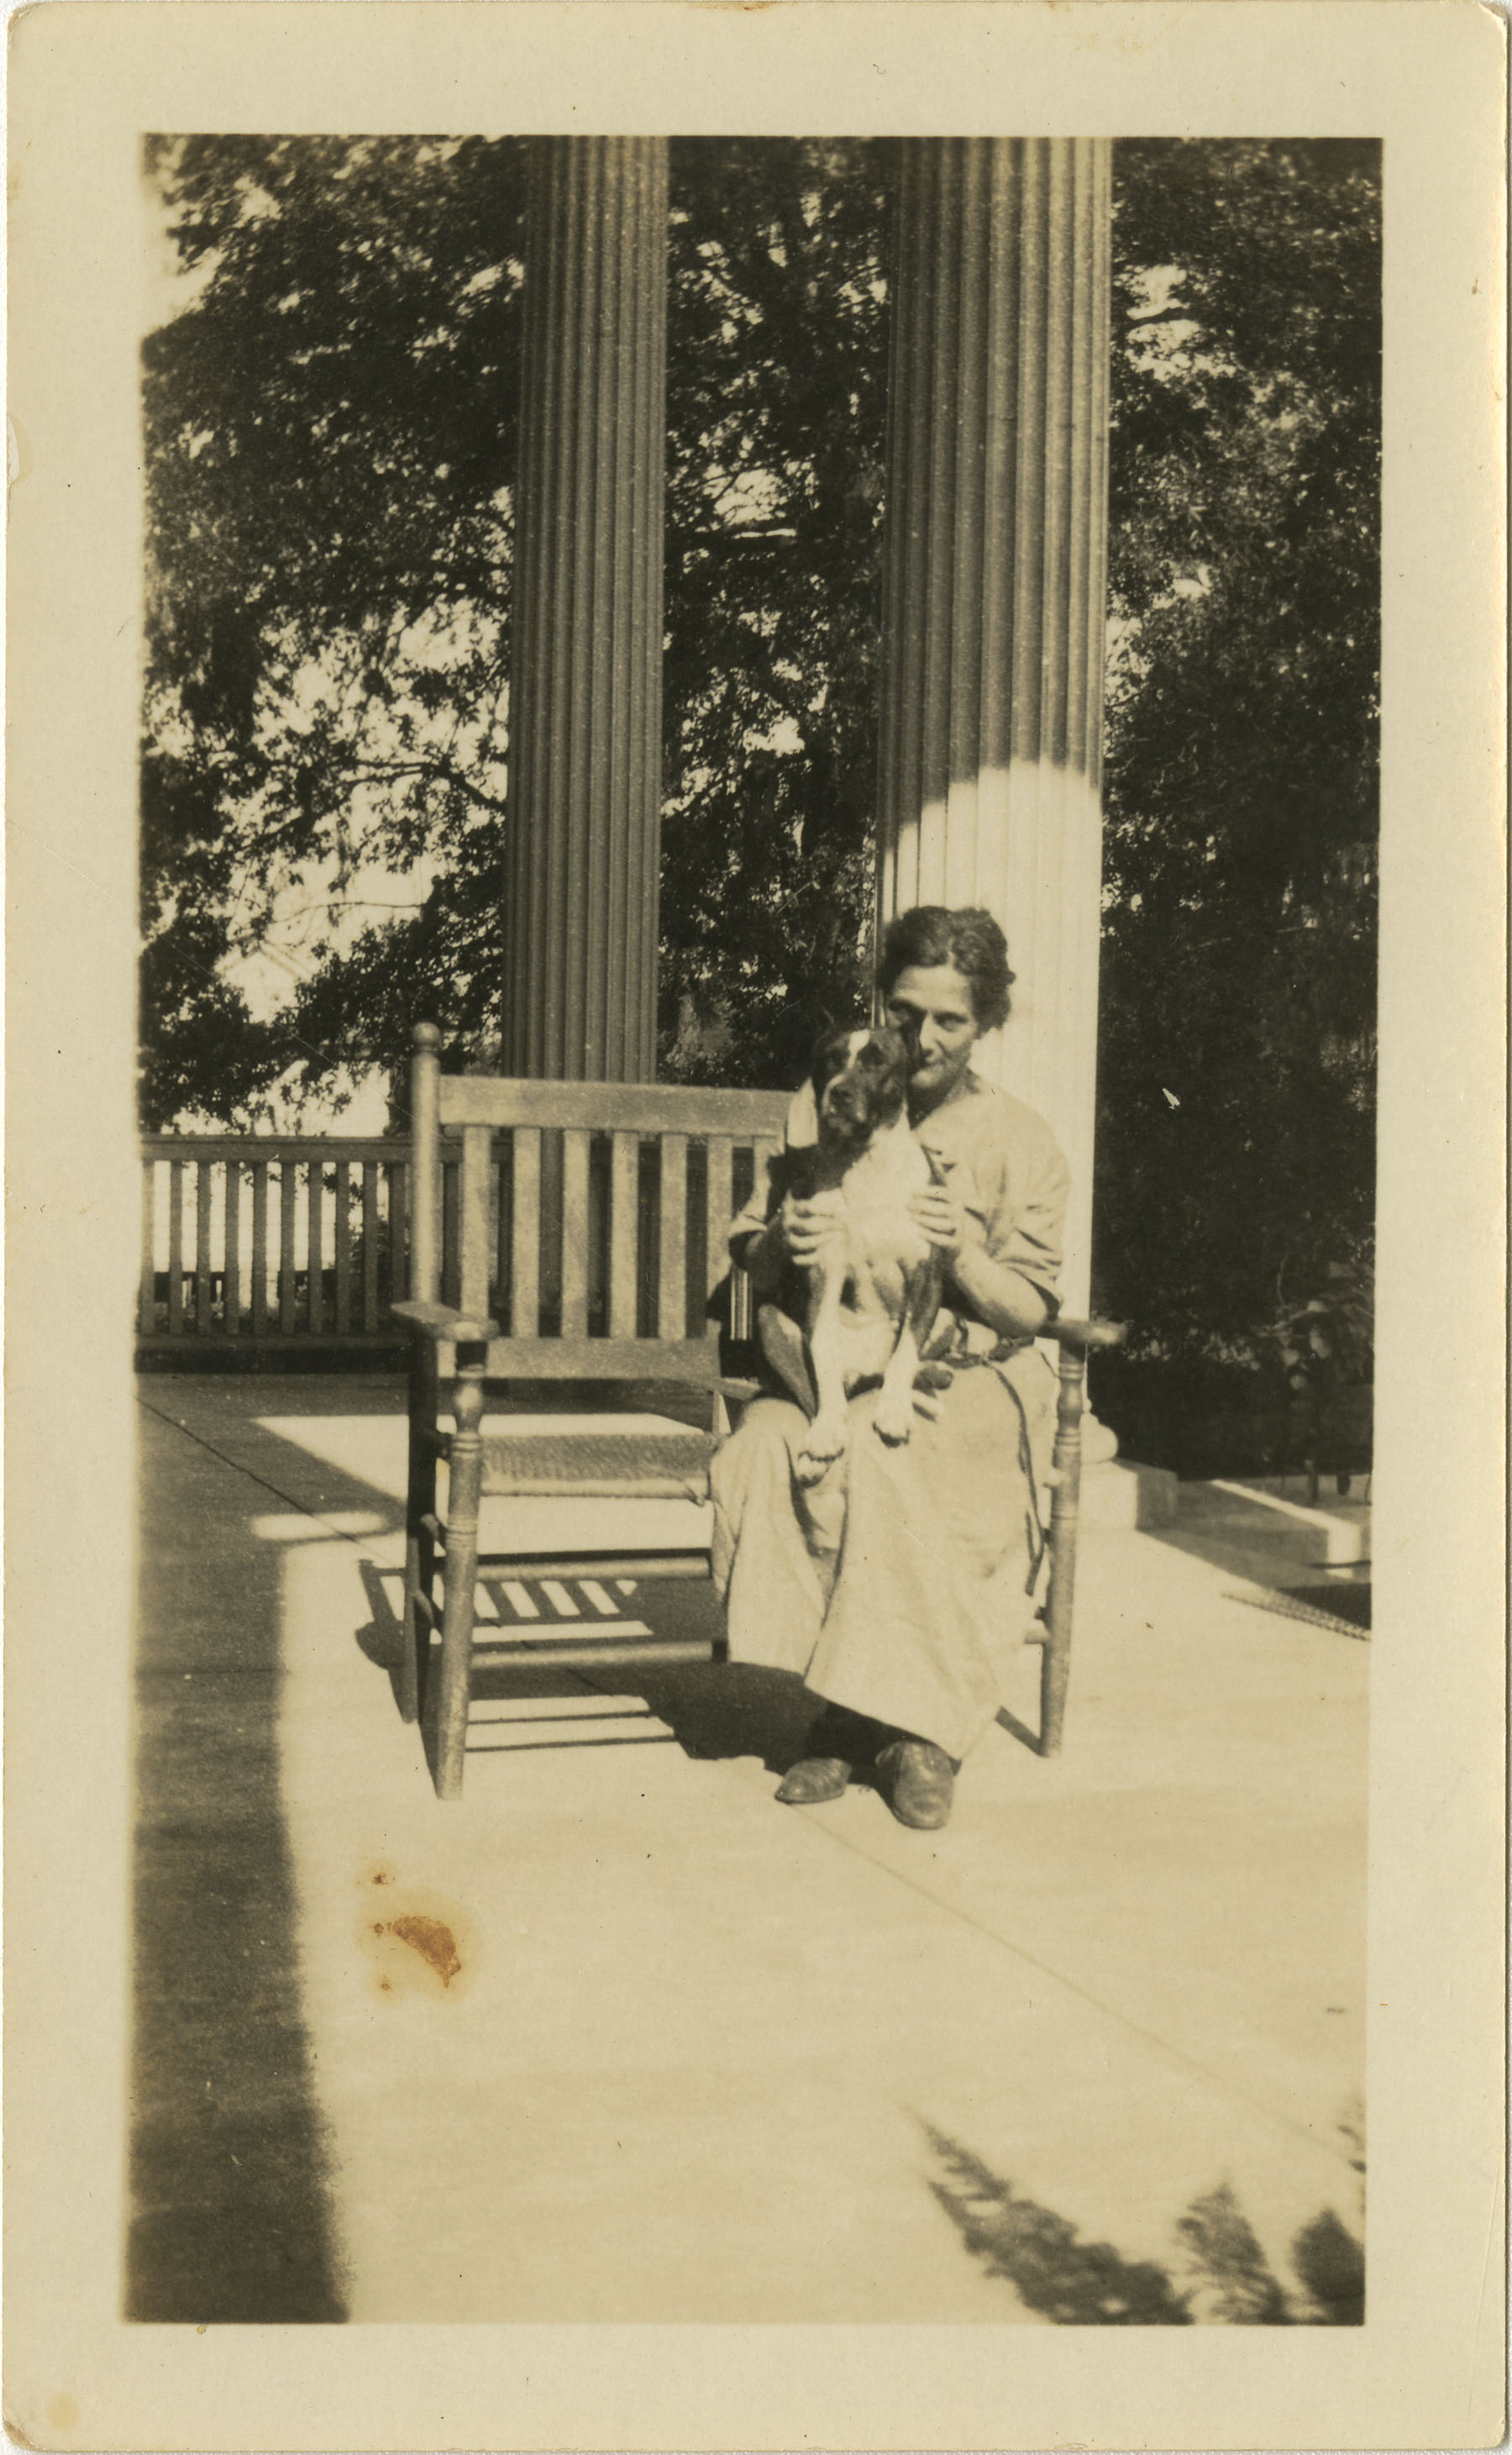 Woman and Dog on Bench